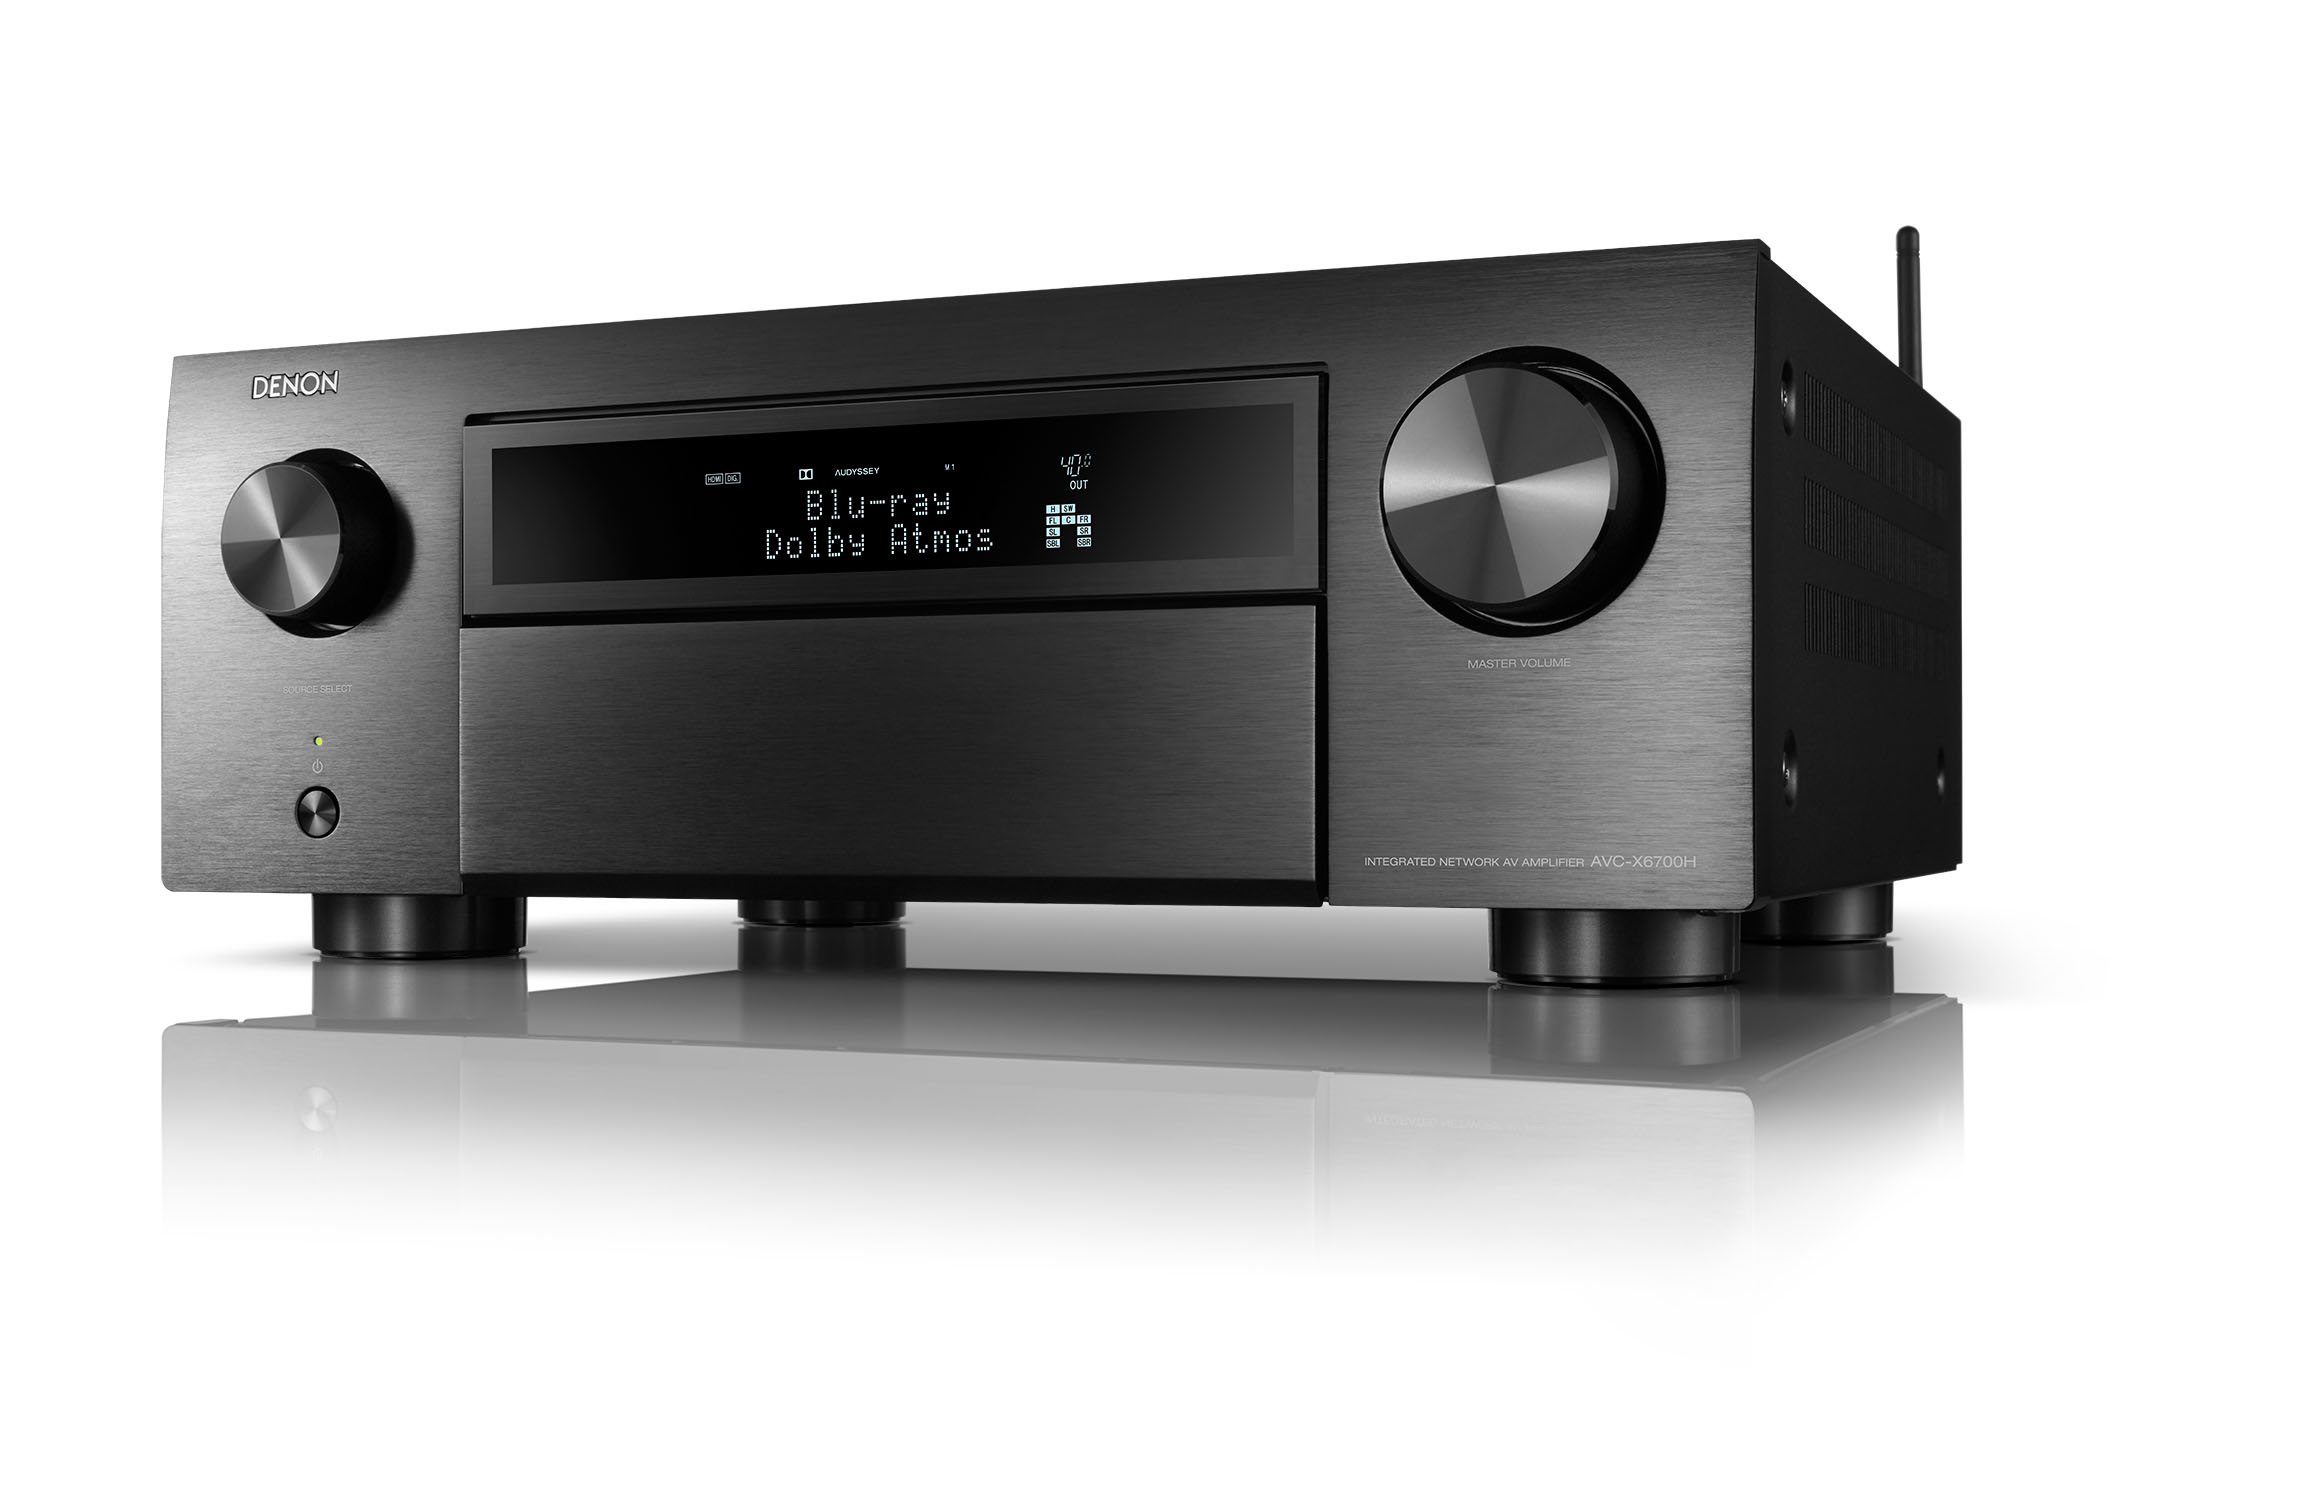 de avc x6700h e2 e1c bk left 001 lo Denon Launches Five New Home Theatre AV Receivers